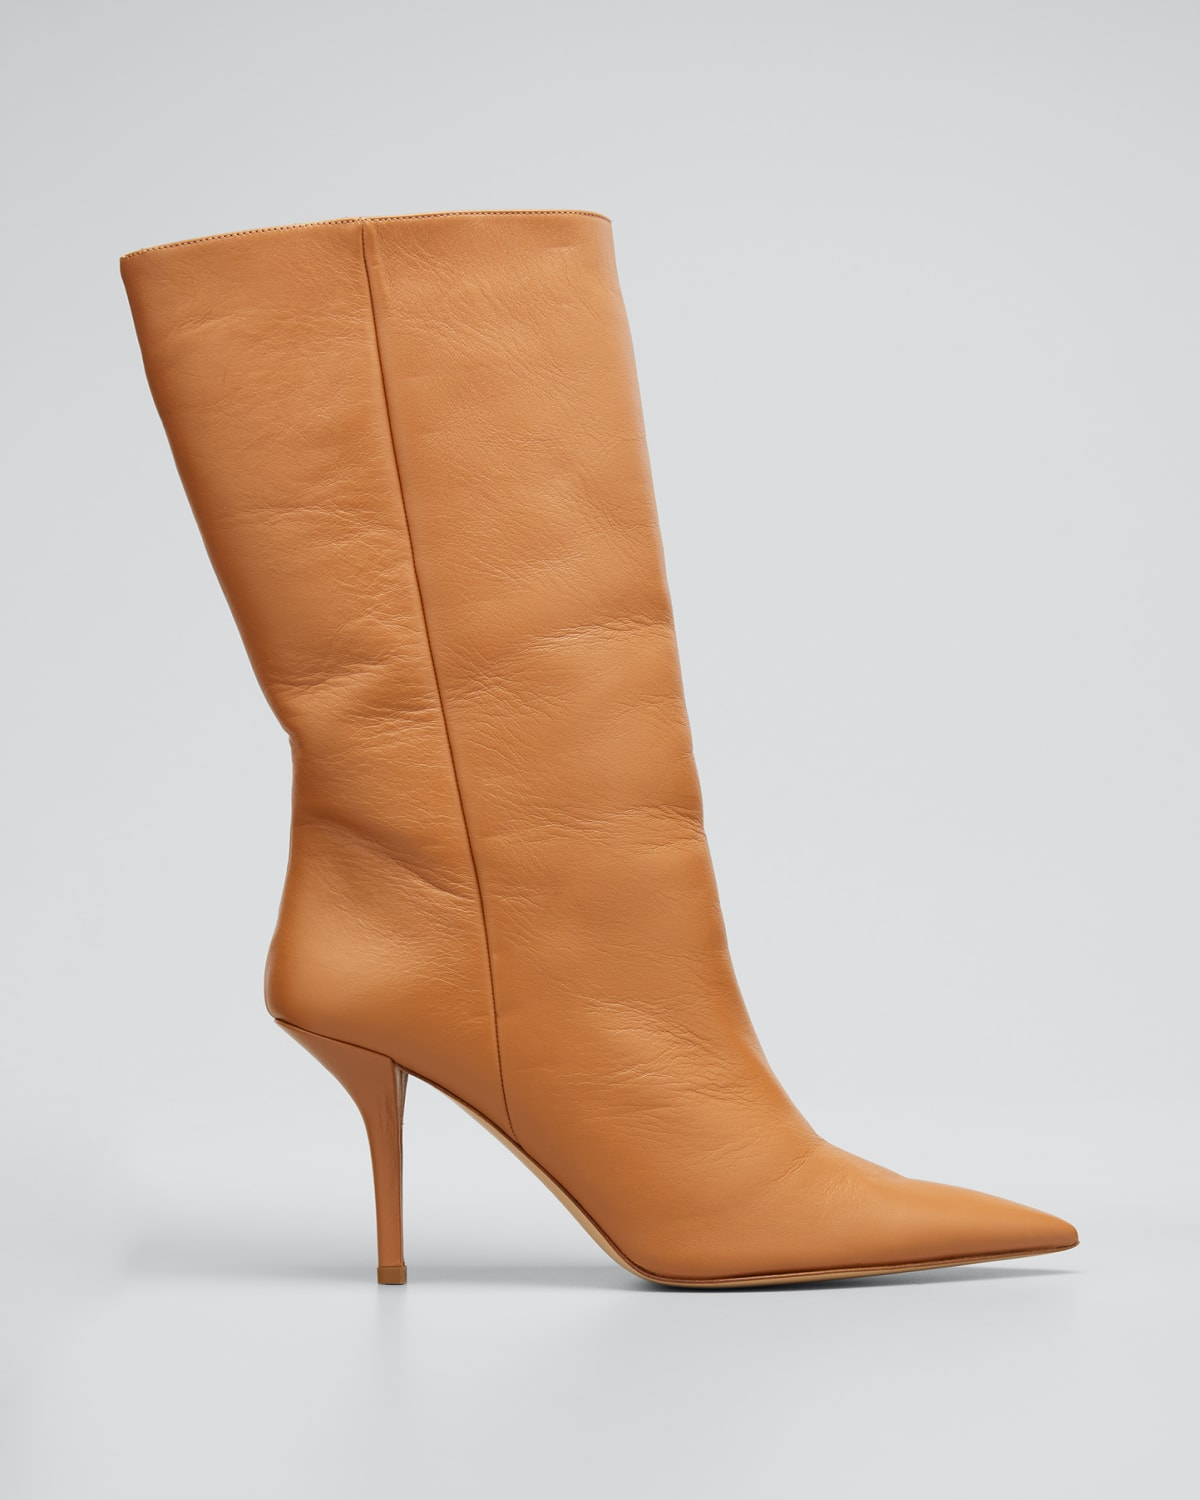 85mm Pointed Leather Mid-Heel Boots